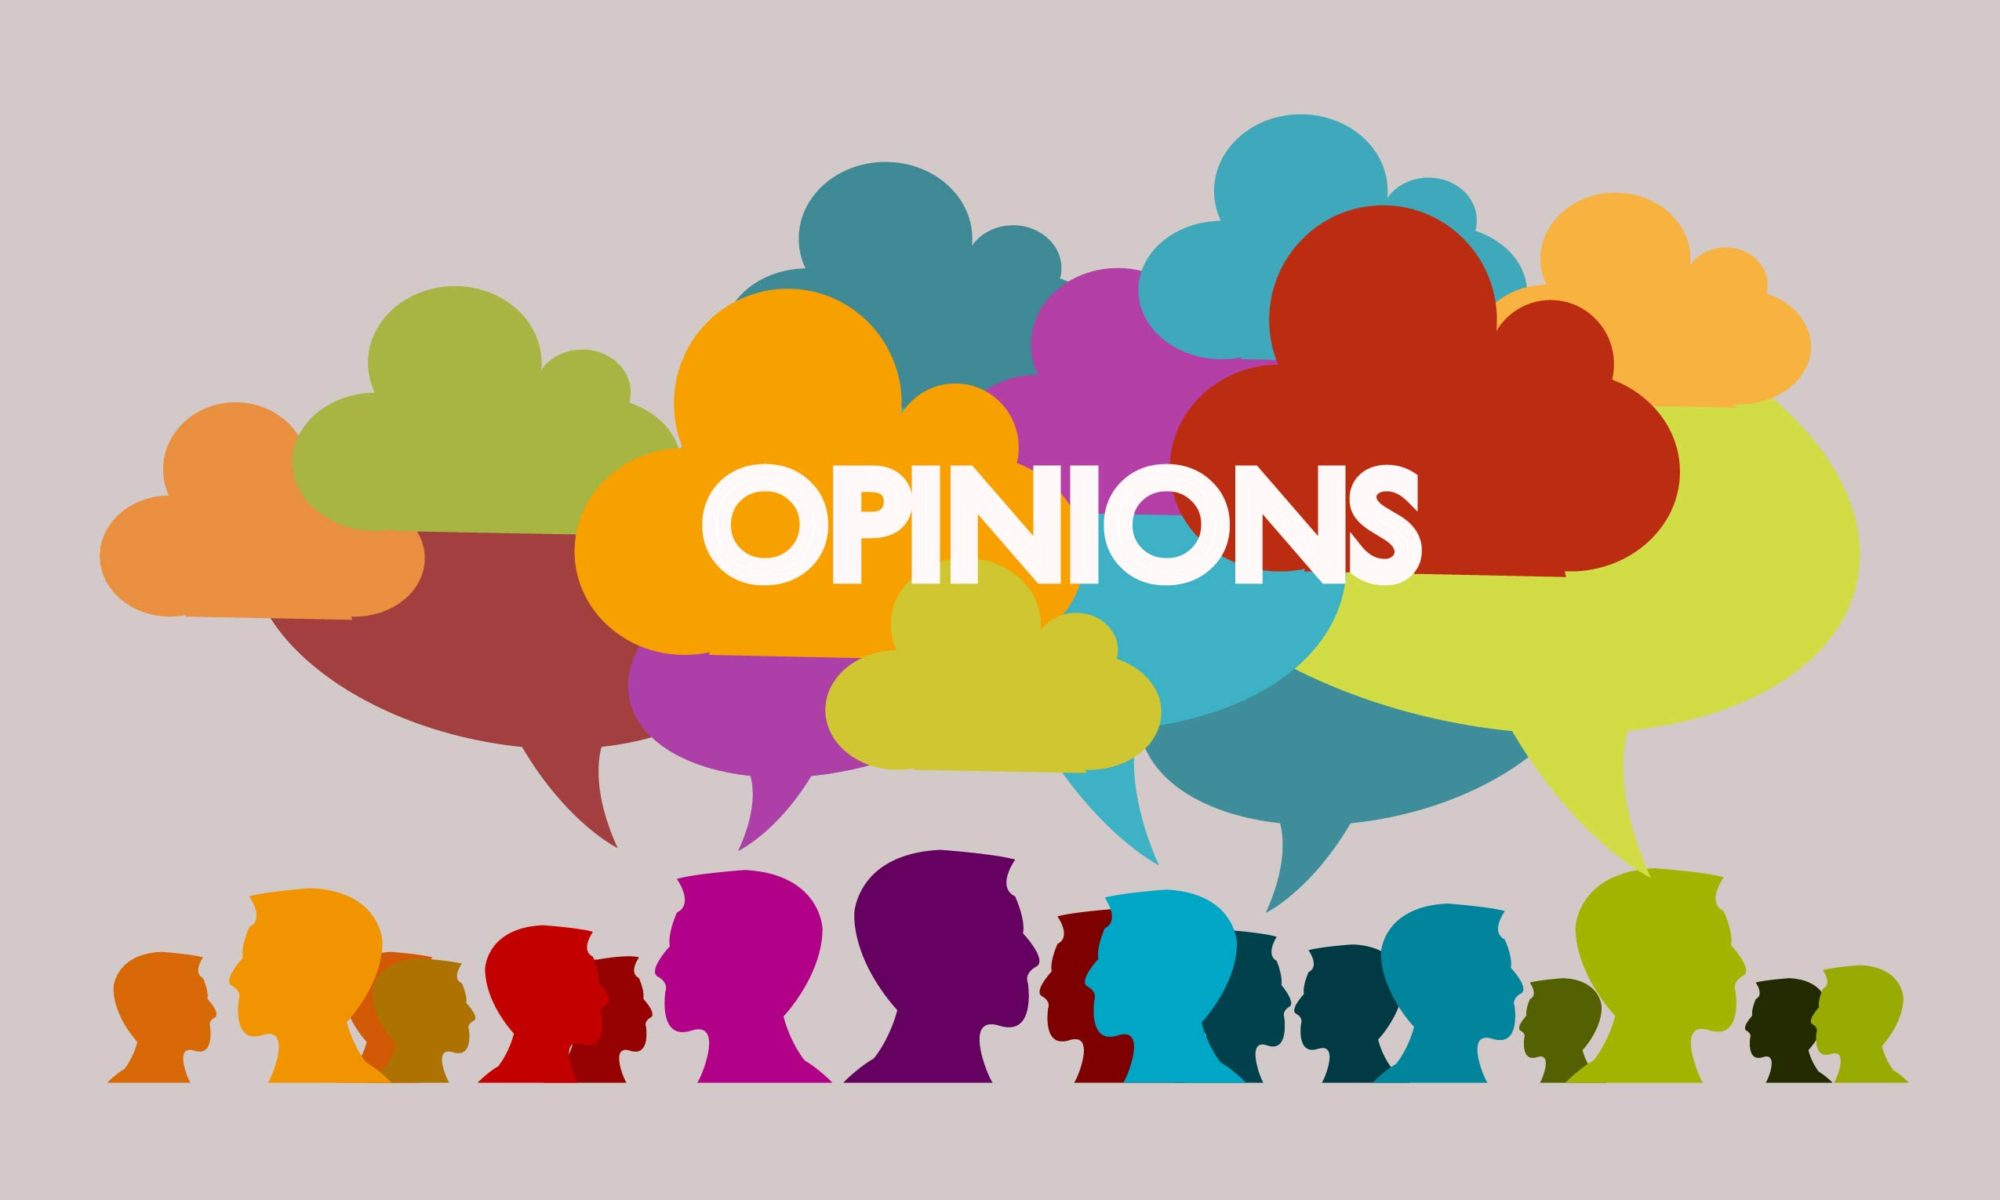 All Opinions Countif you disagree, keep your opinion to.